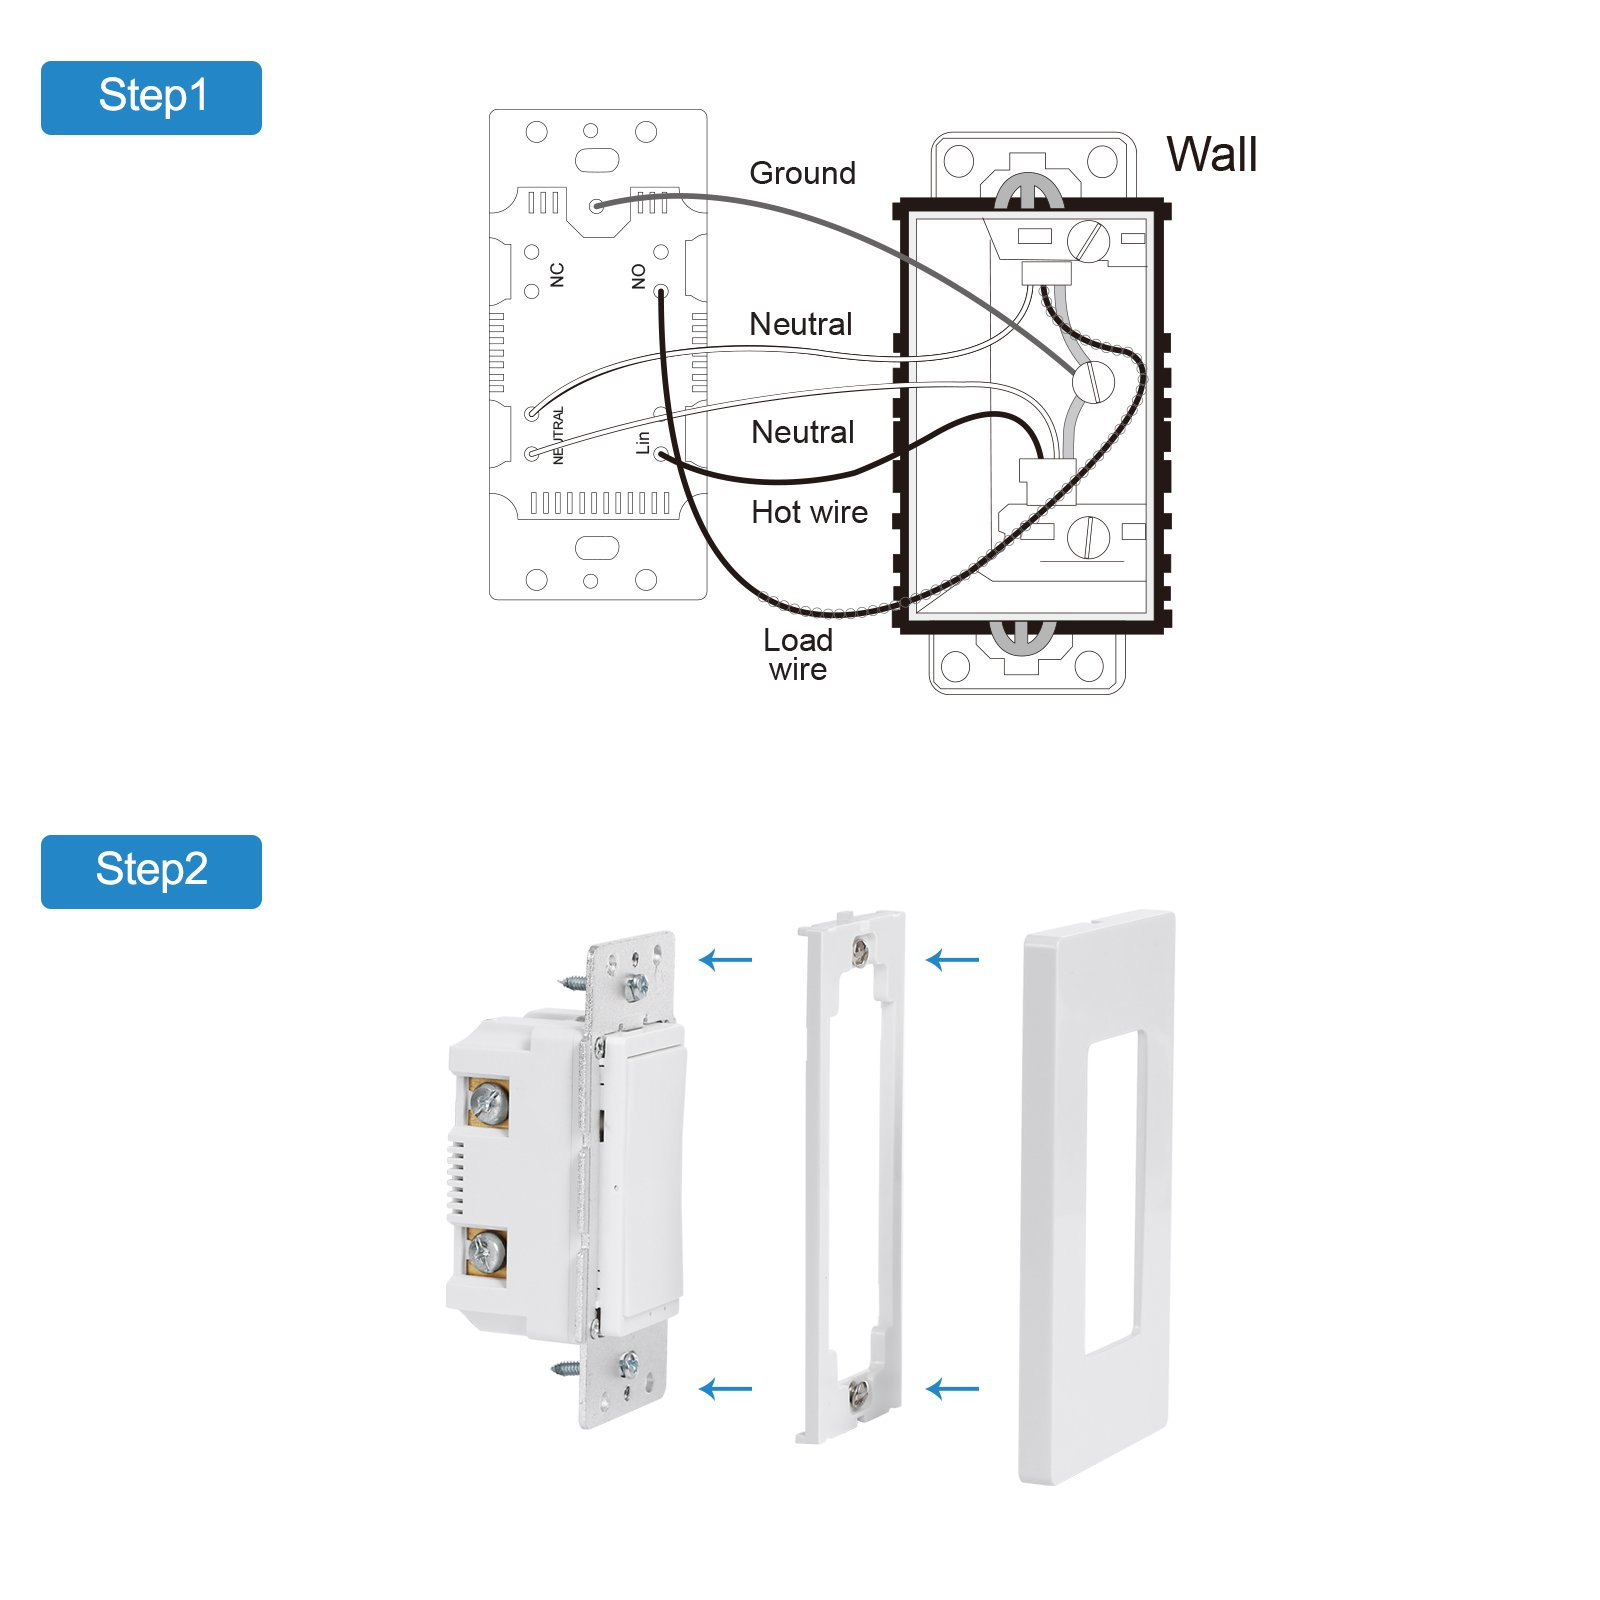 DEWENWILS Smart WiFi Light Switch In-wall, Wireless Remote Control, No Hub Required, Control Your Fixtures from Anywhere, Compatible with Alexa, Google Assistant and IFTTT by DEWENWILS (Image #7)